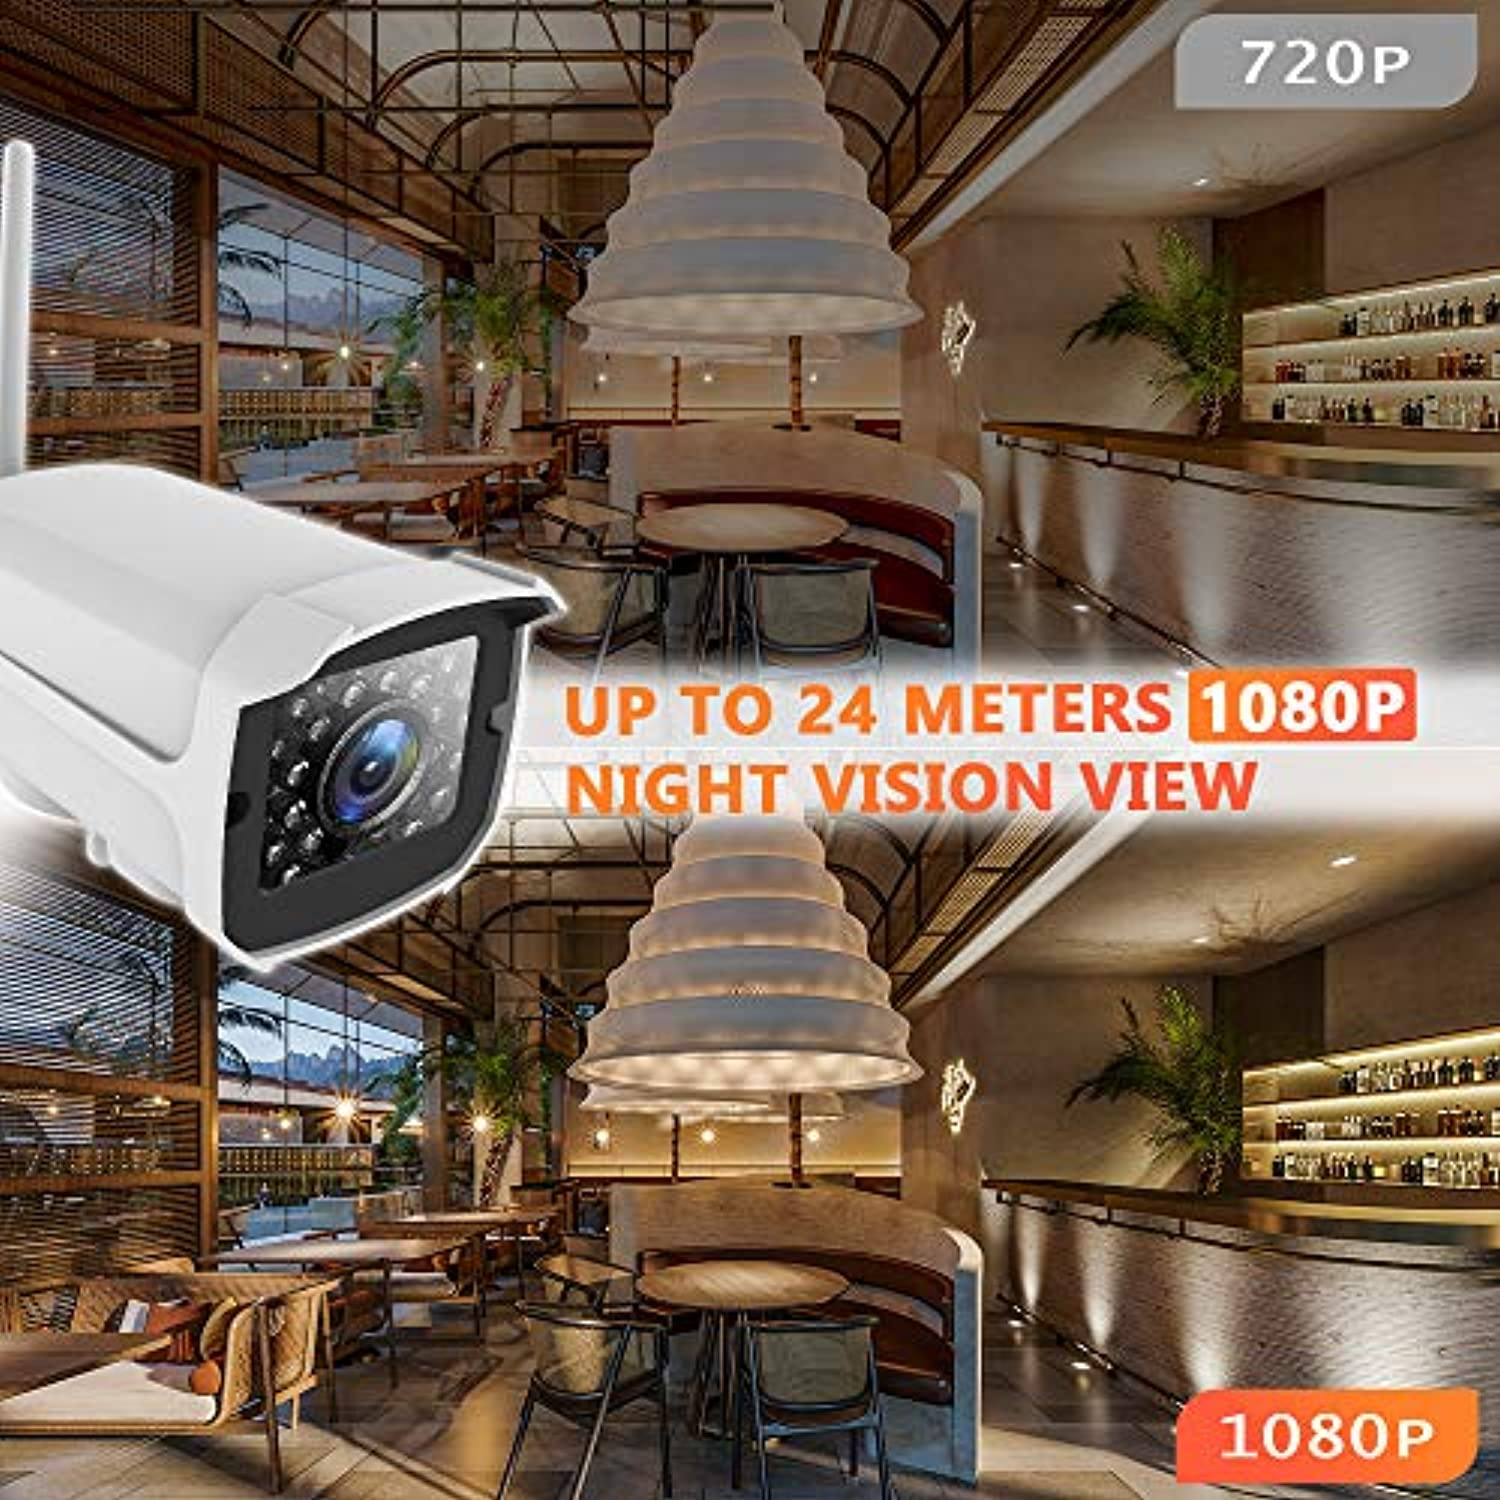 Classier: Buy AMICCOM Outdoor Security Camera, 1080P WiFi Camera Surveillance Cameras, IP Camera with Two-Way Audio, IP66 Waterproof, Night Vision, Motion Detection, Activity Alert, Deterrent Alarm - iOS, Android